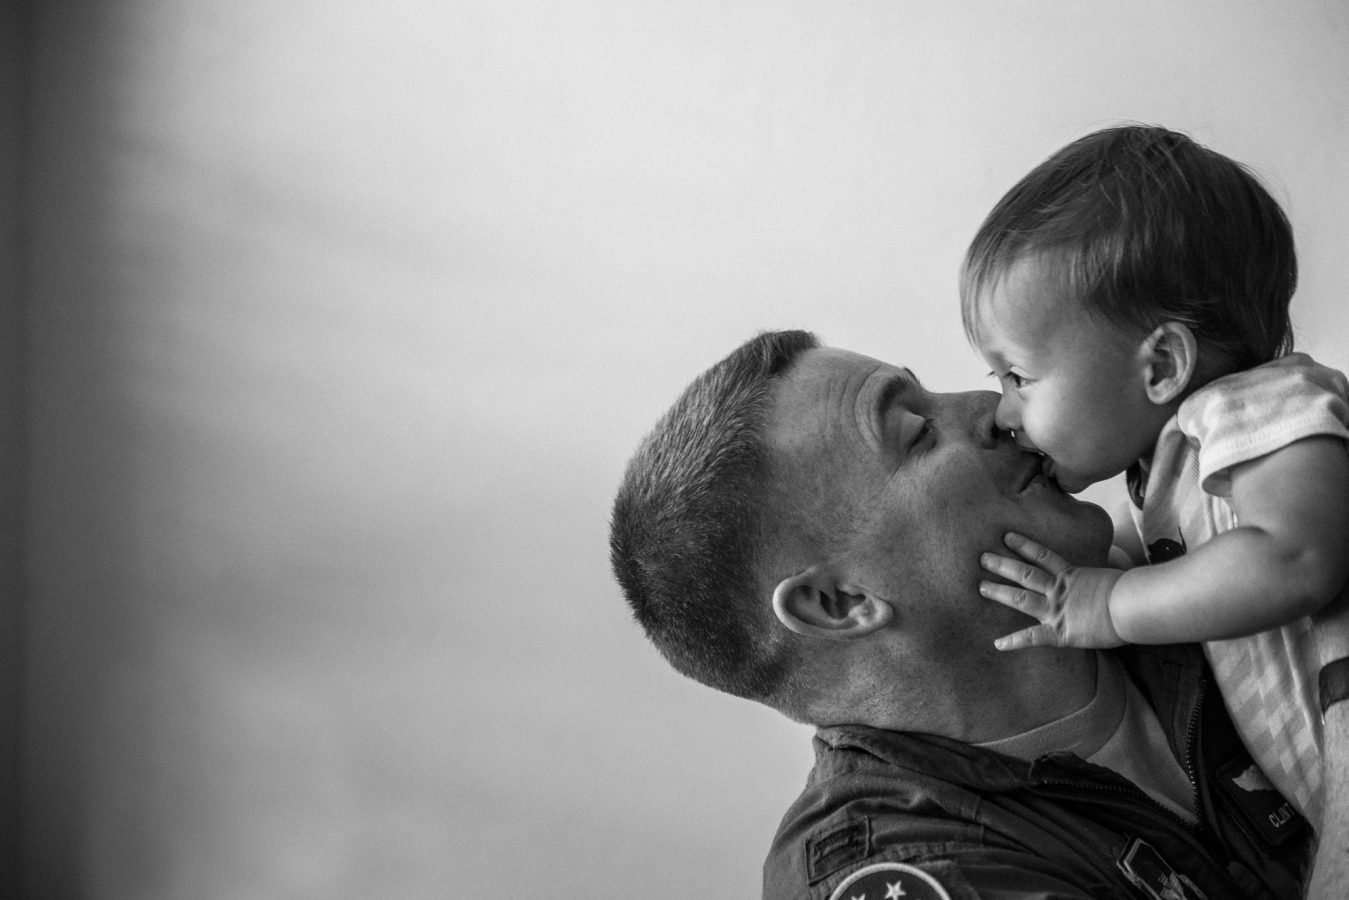 spokane-photographer-baby-kiss-dad